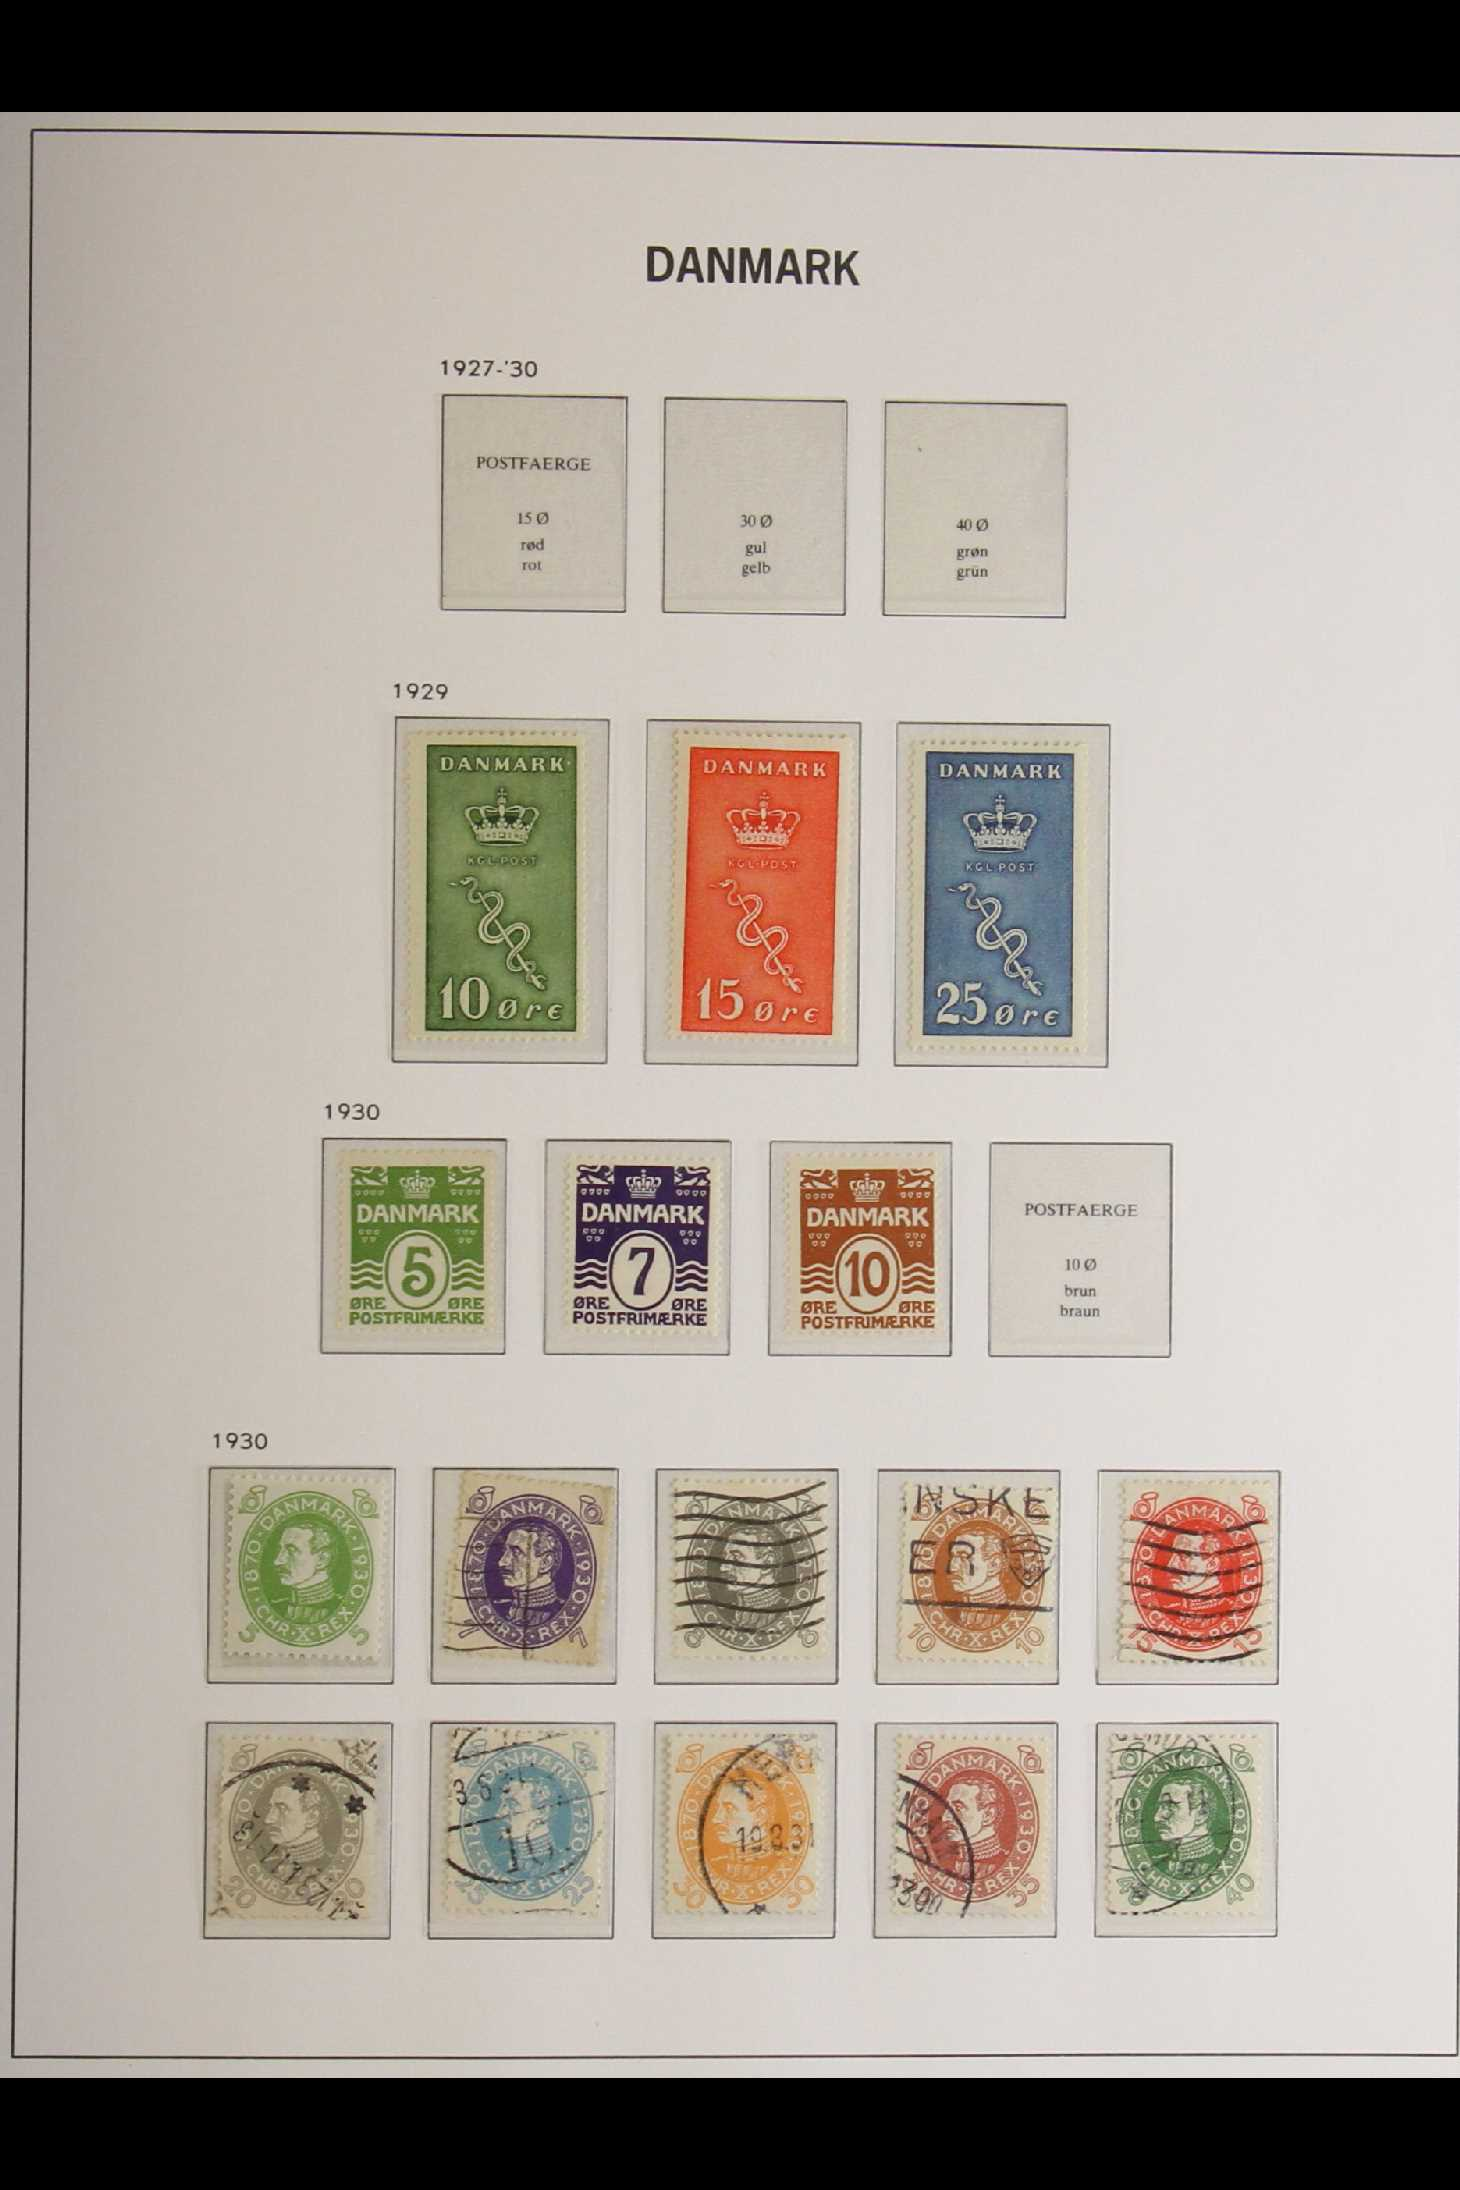 DENMARK 1882-1969 mint and used collection in an album incl. 1882 (small corner figures) 5 ore and - Image 6 of 15